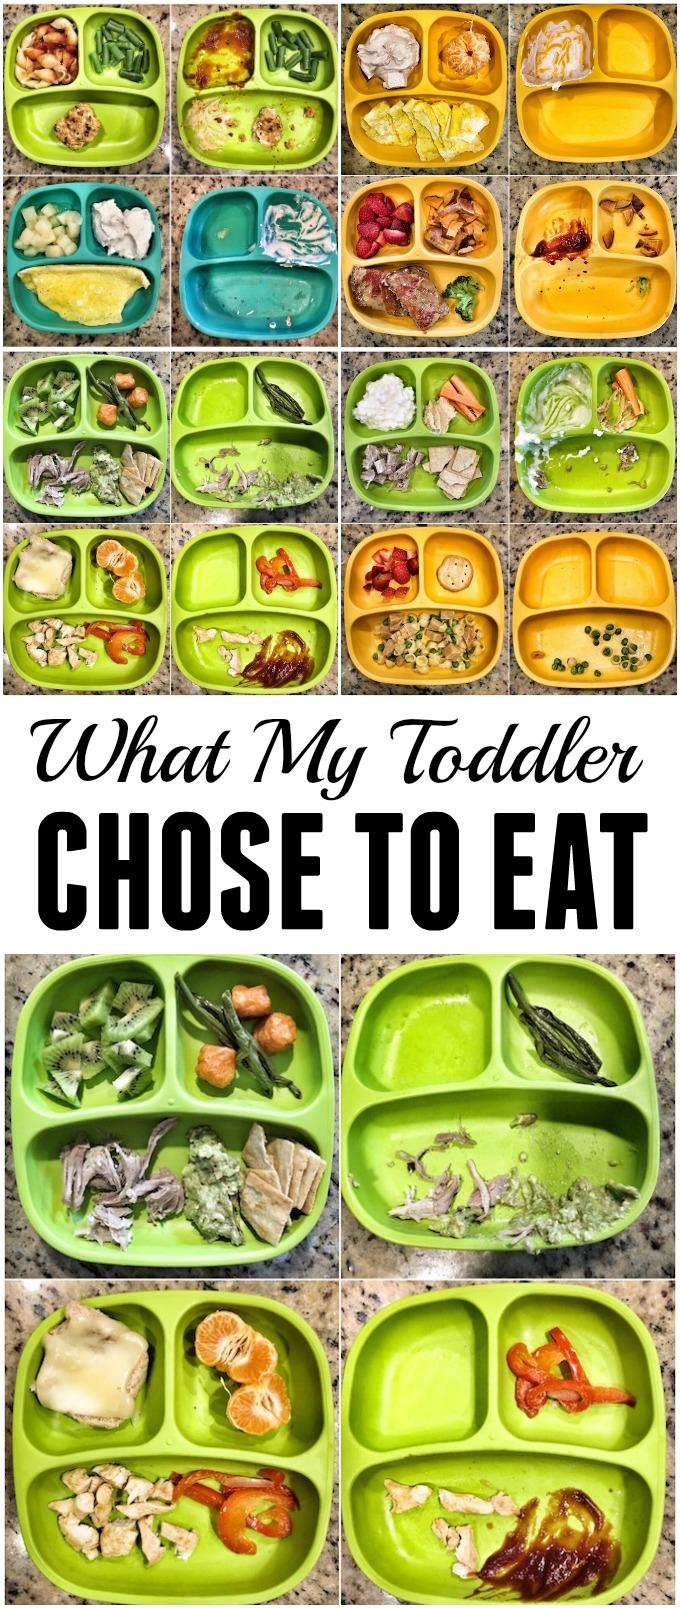 A look at what my toddler chose to eat versus what I served him for a week of breakfast, lunch and dinners.